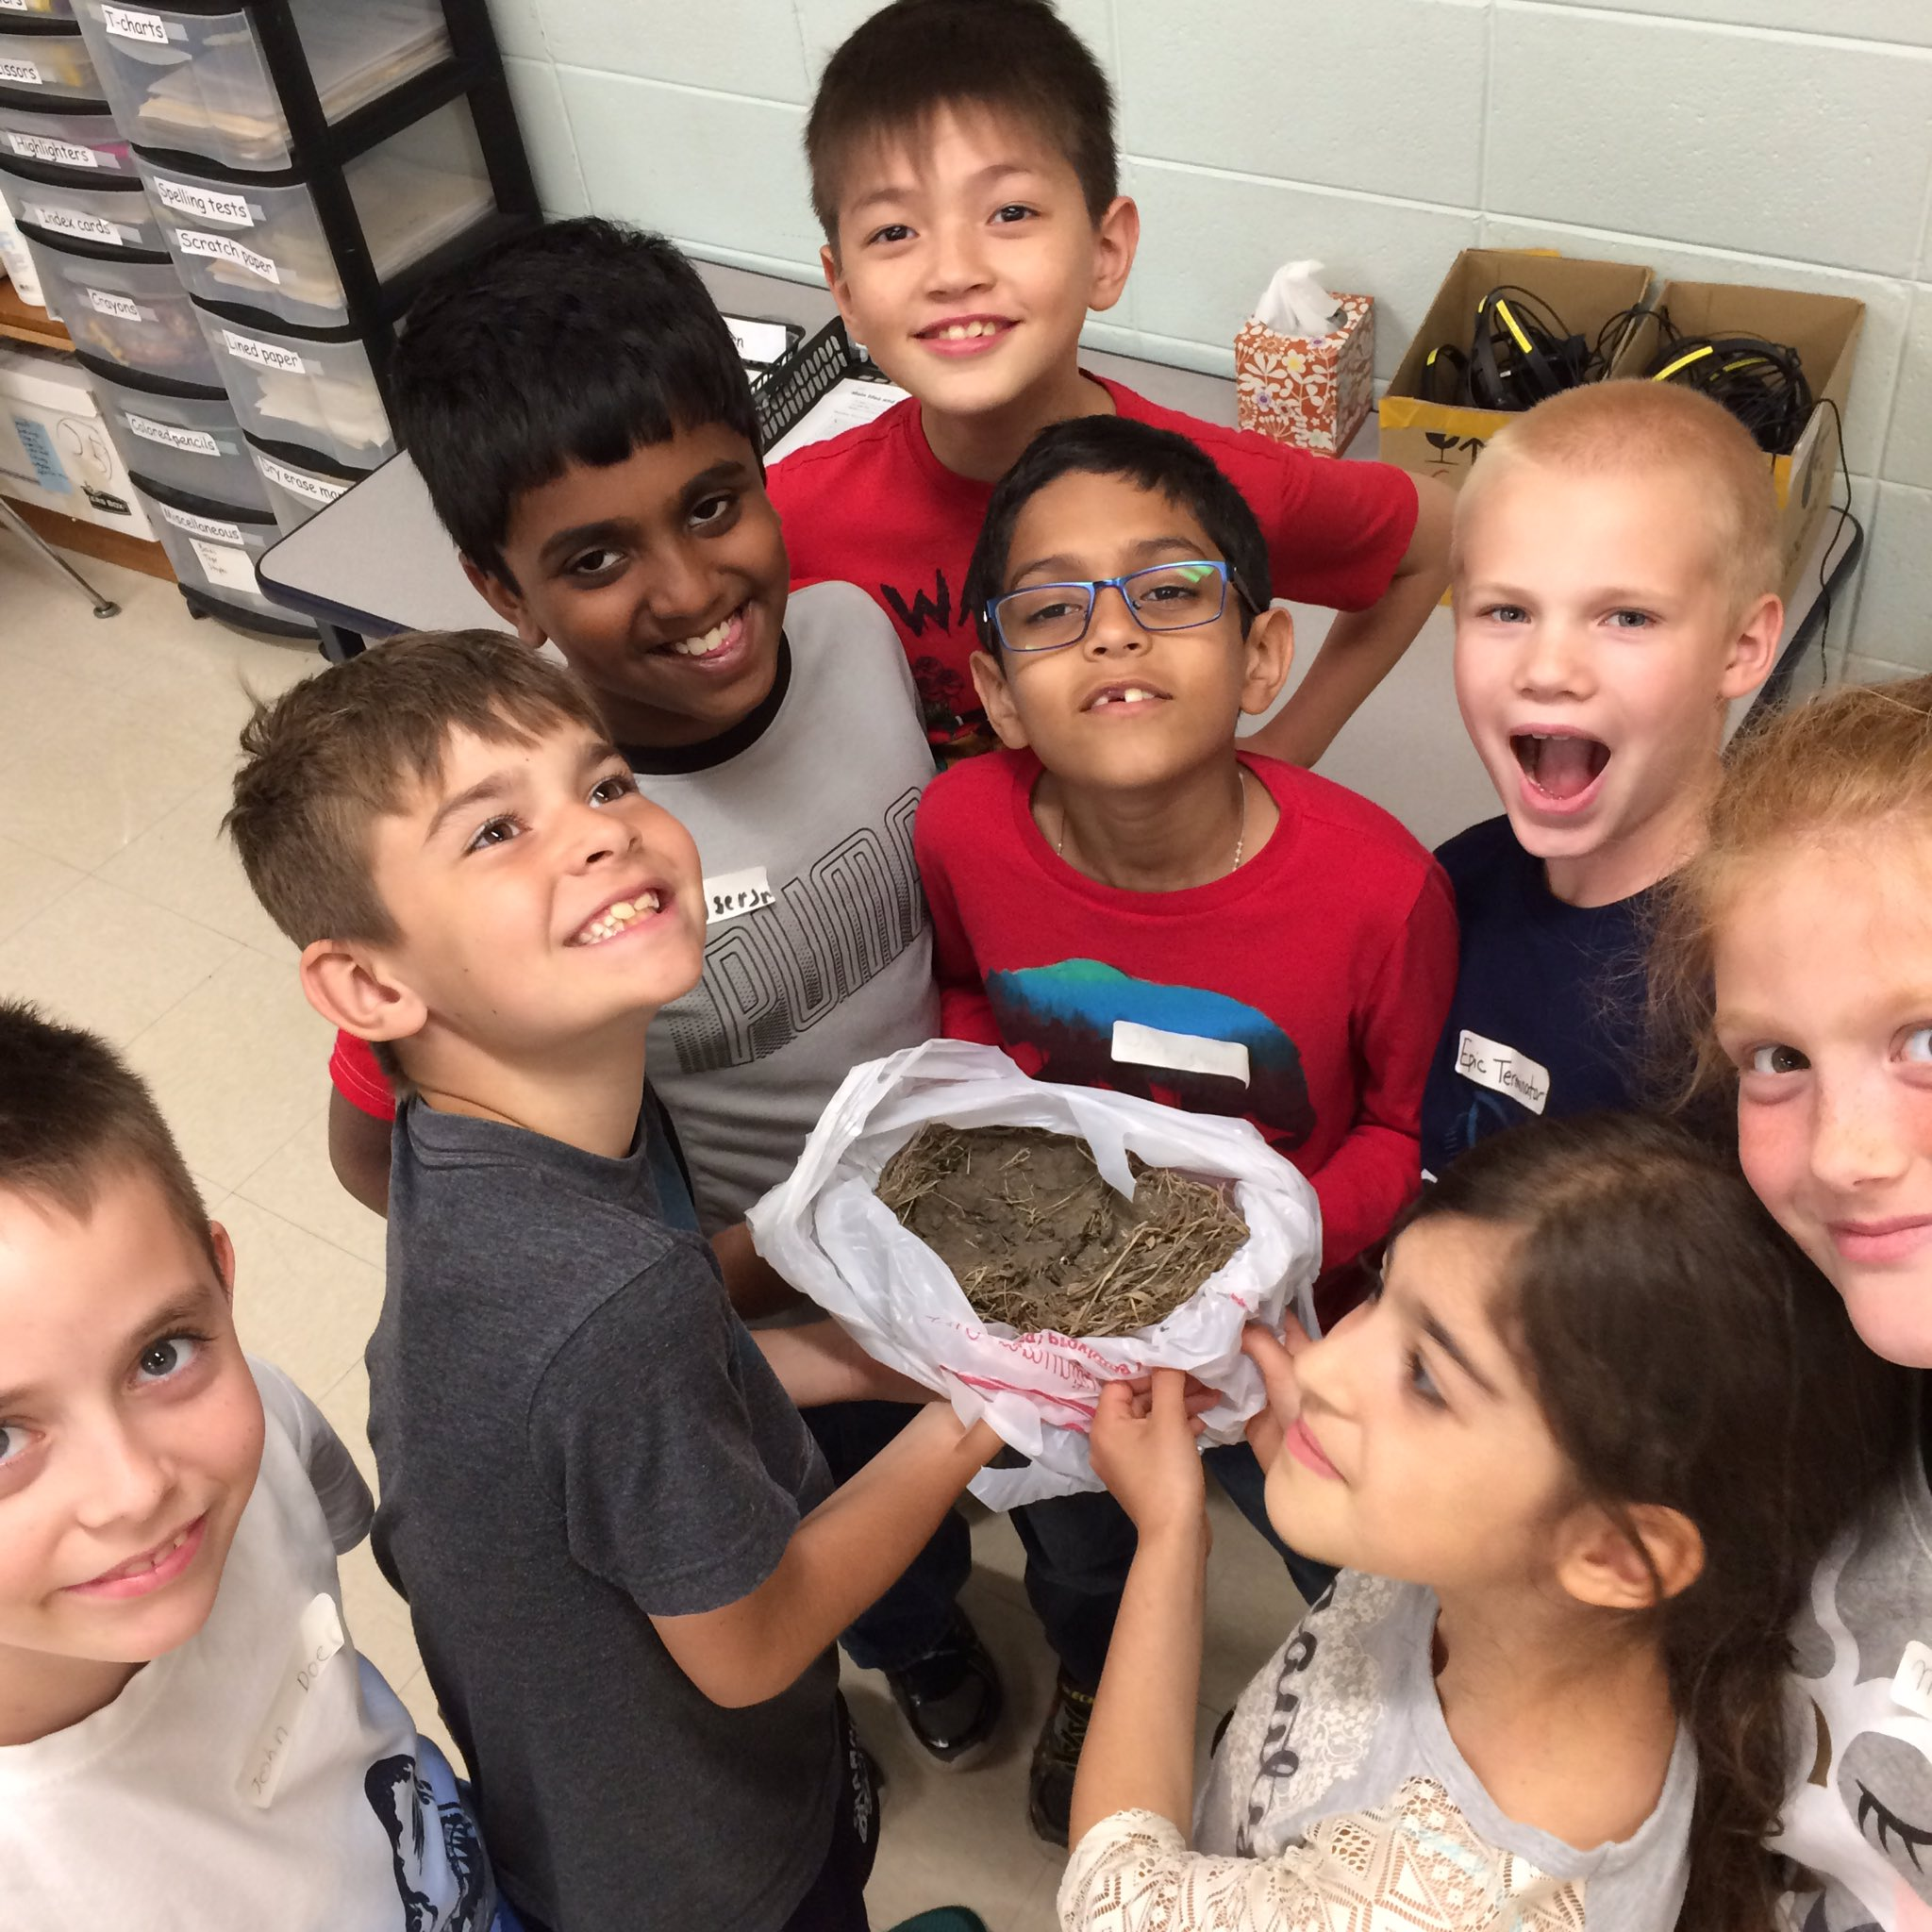 Amazing bird nests: examining a well-constructed nest. #iginspires. #rtsd26learns https://t.co/HkwXL6ZcAd